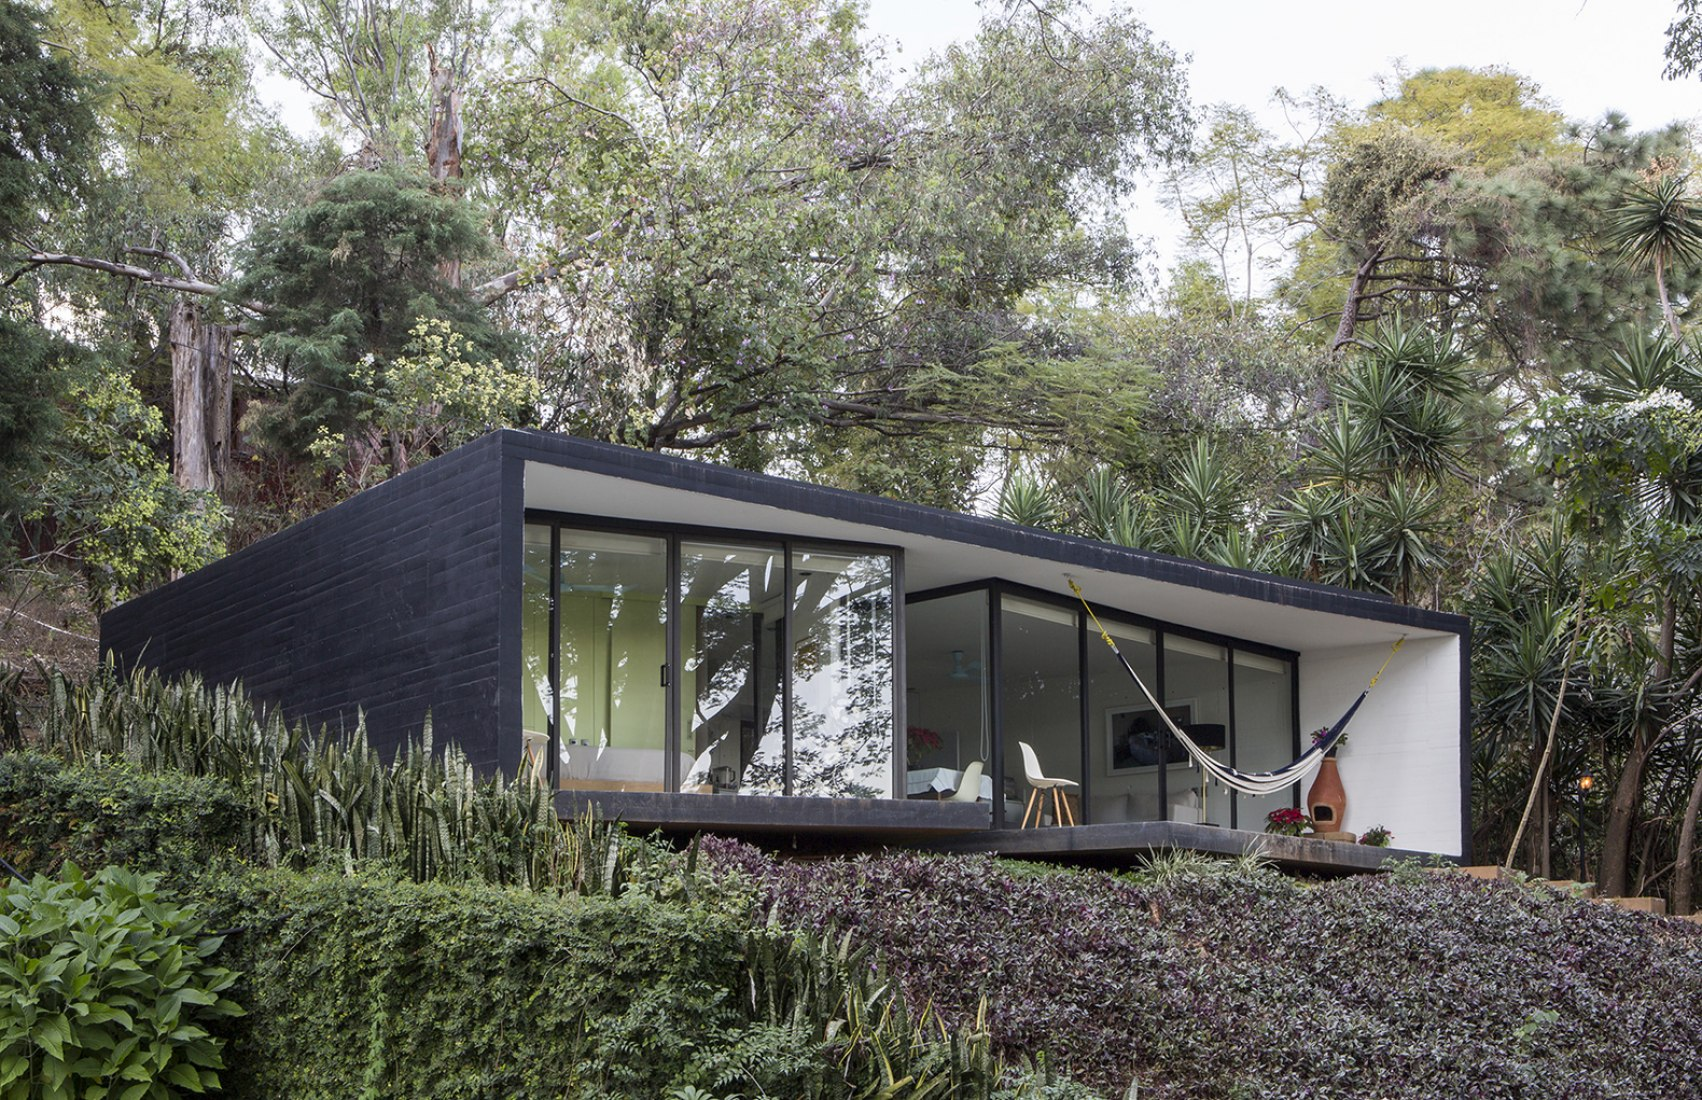 Exterior view. Tepoztlán Lounge by Cadaval & Solà-Morales. Photography © Diego Berruecos.